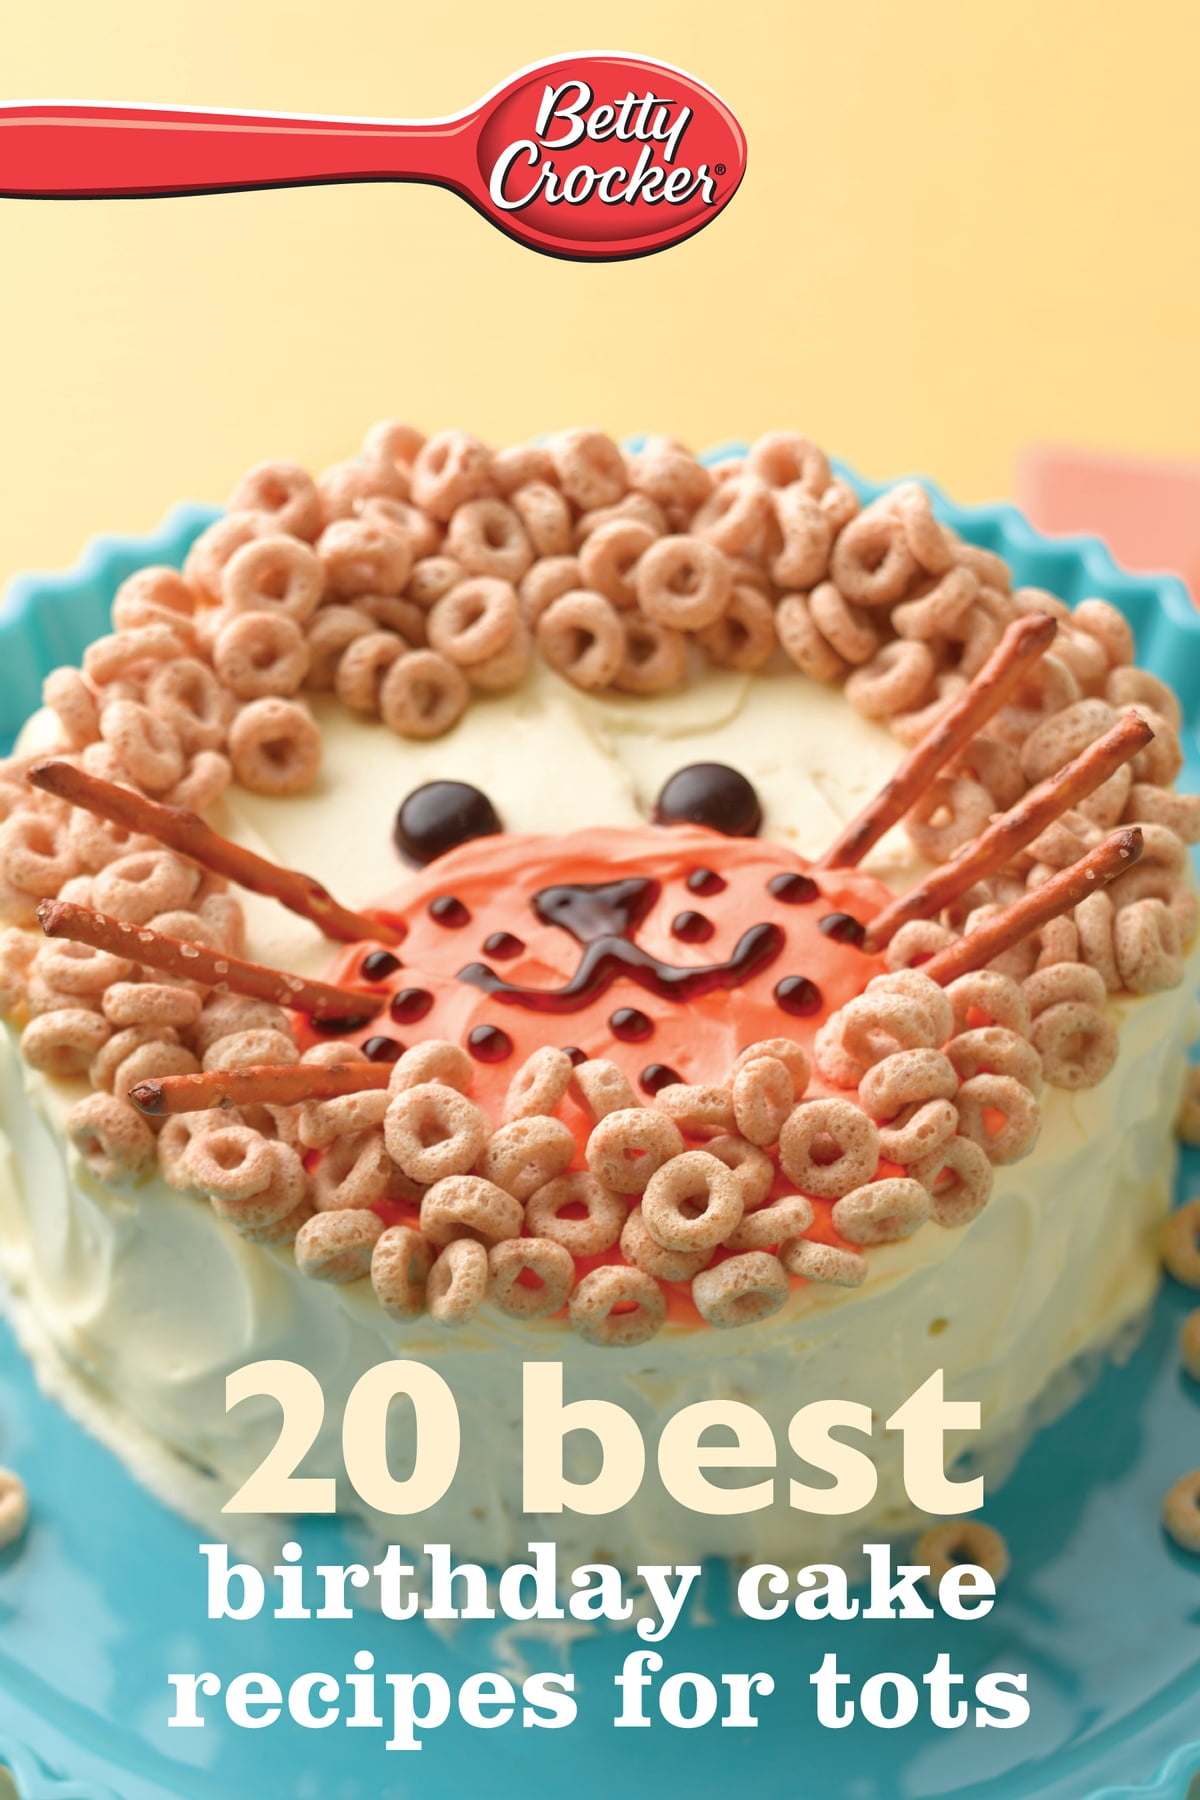 Peachy Betty Crocker 20 Best Birthday Cakes Recipes For Tots Ebook By Funny Birthday Cards Online Barepcheapnameinfo